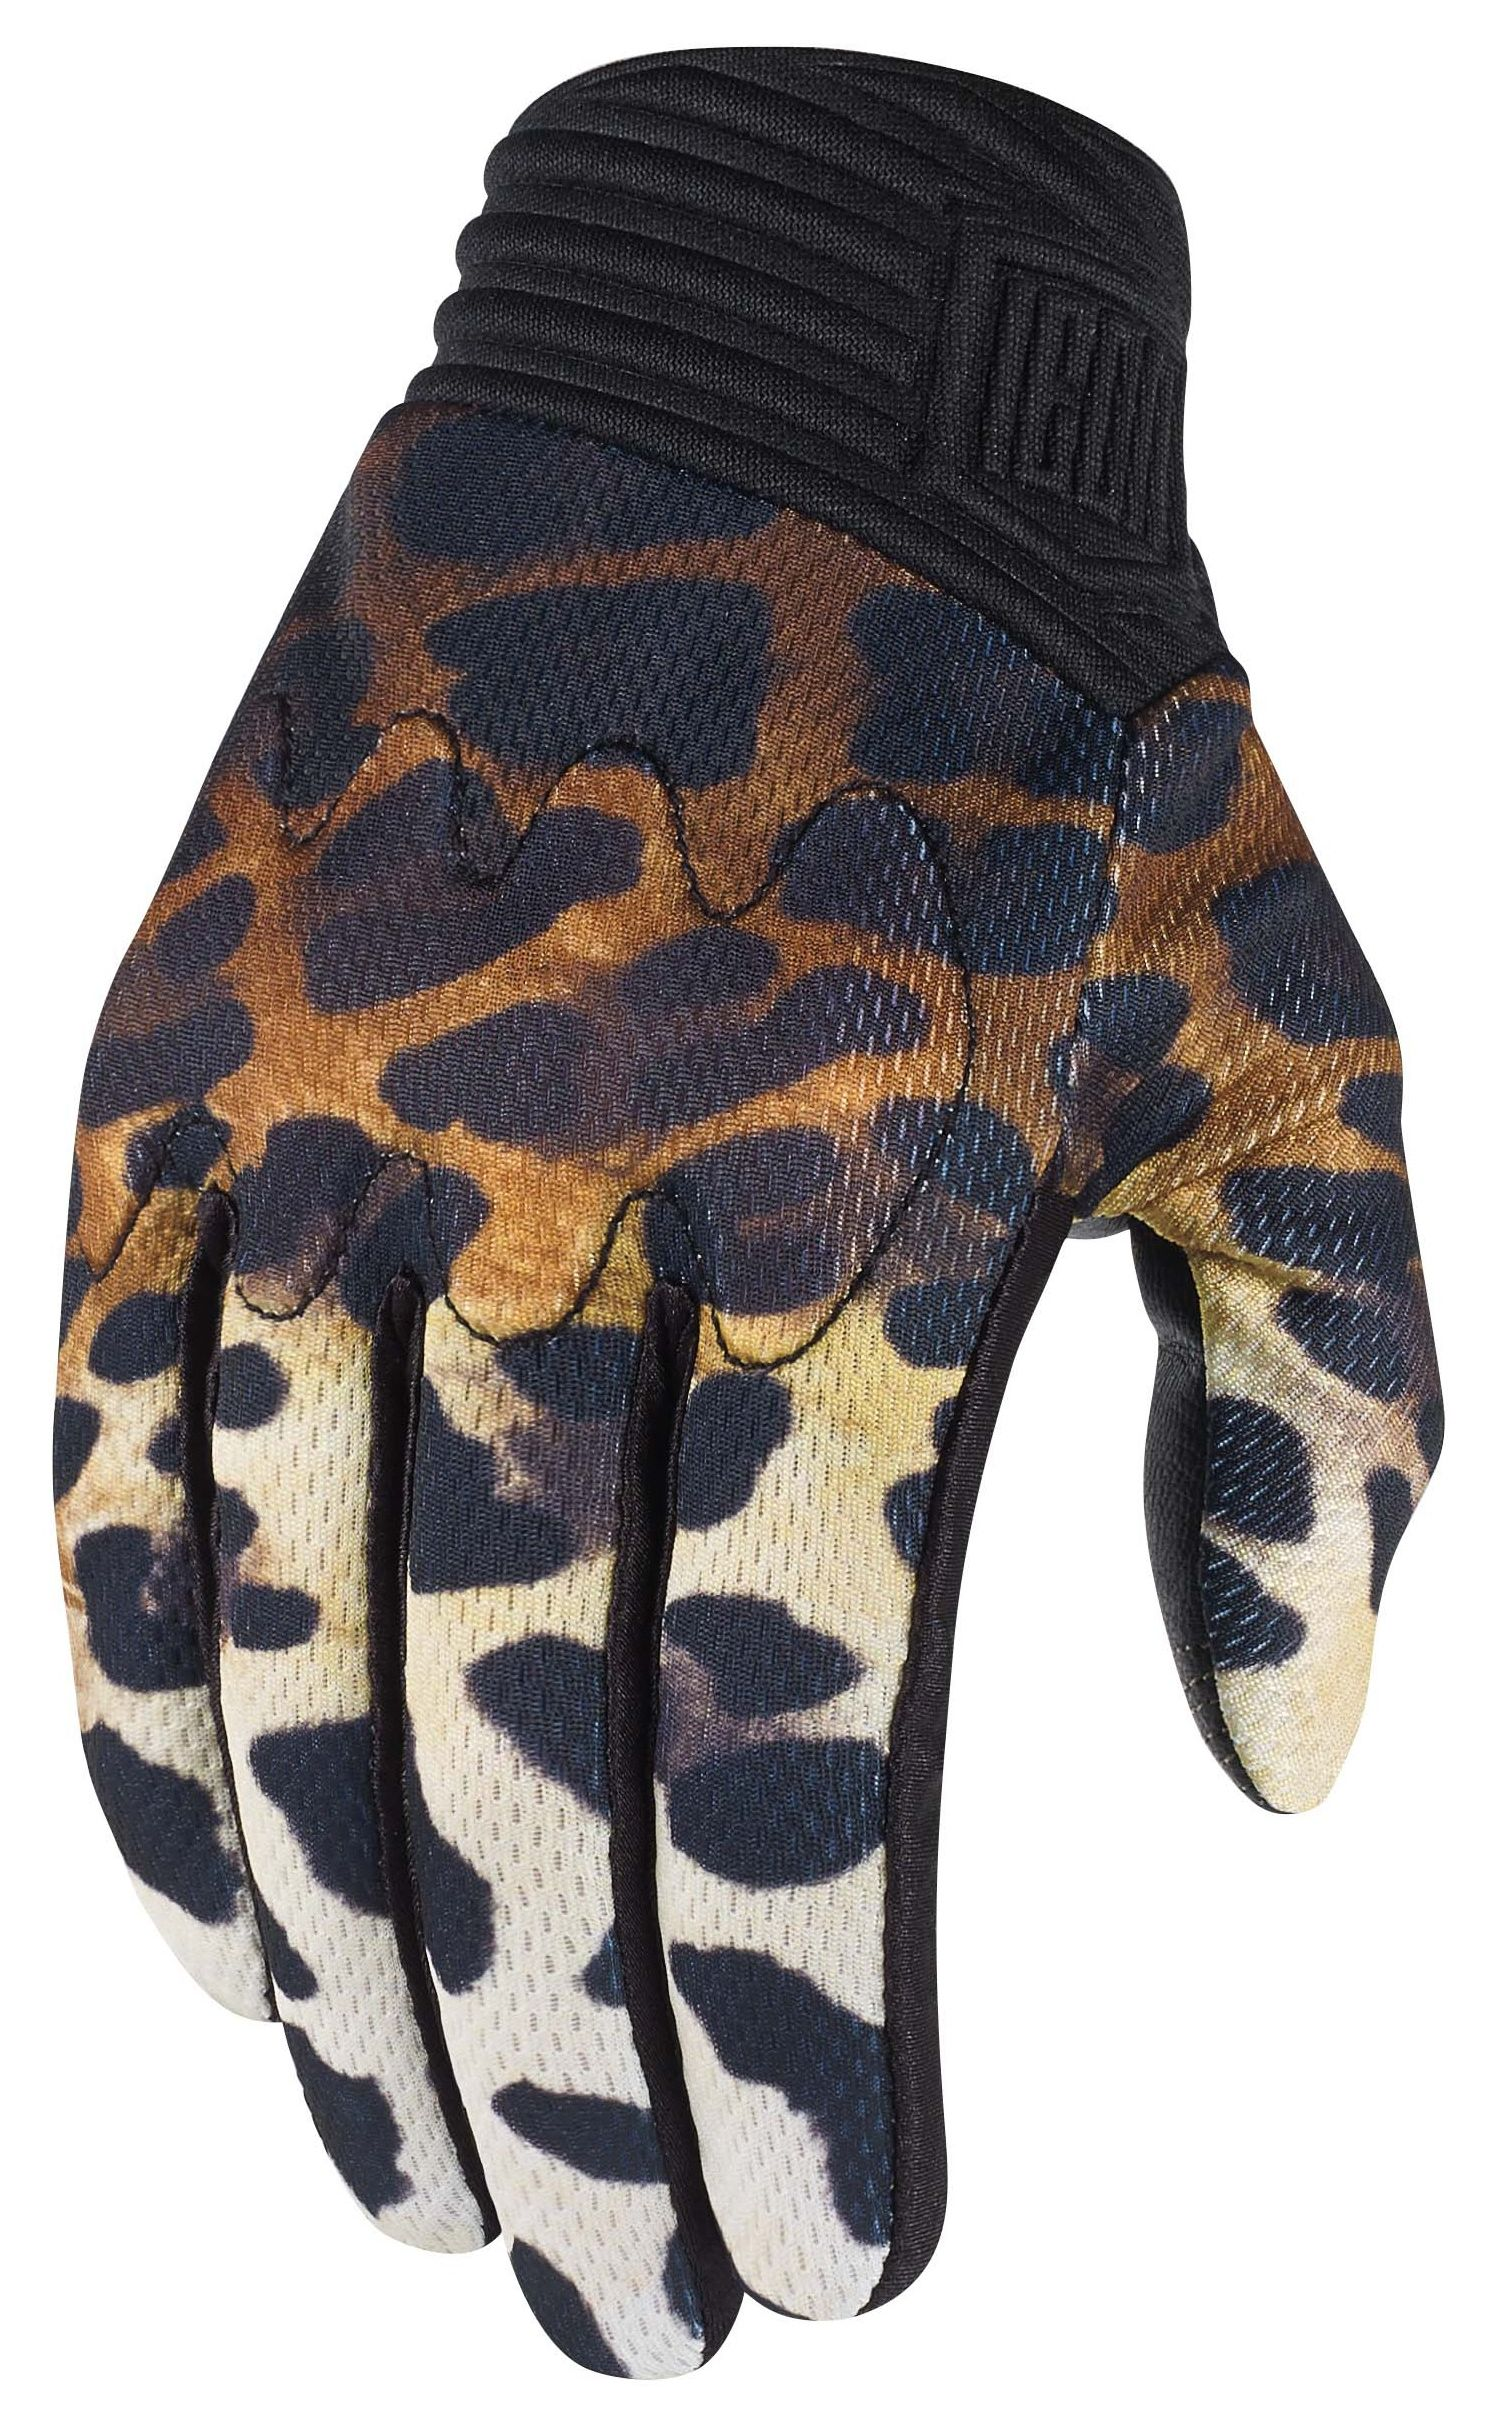 Motorcycle gloves for summer - Motorcycle Gloves For Summer 53